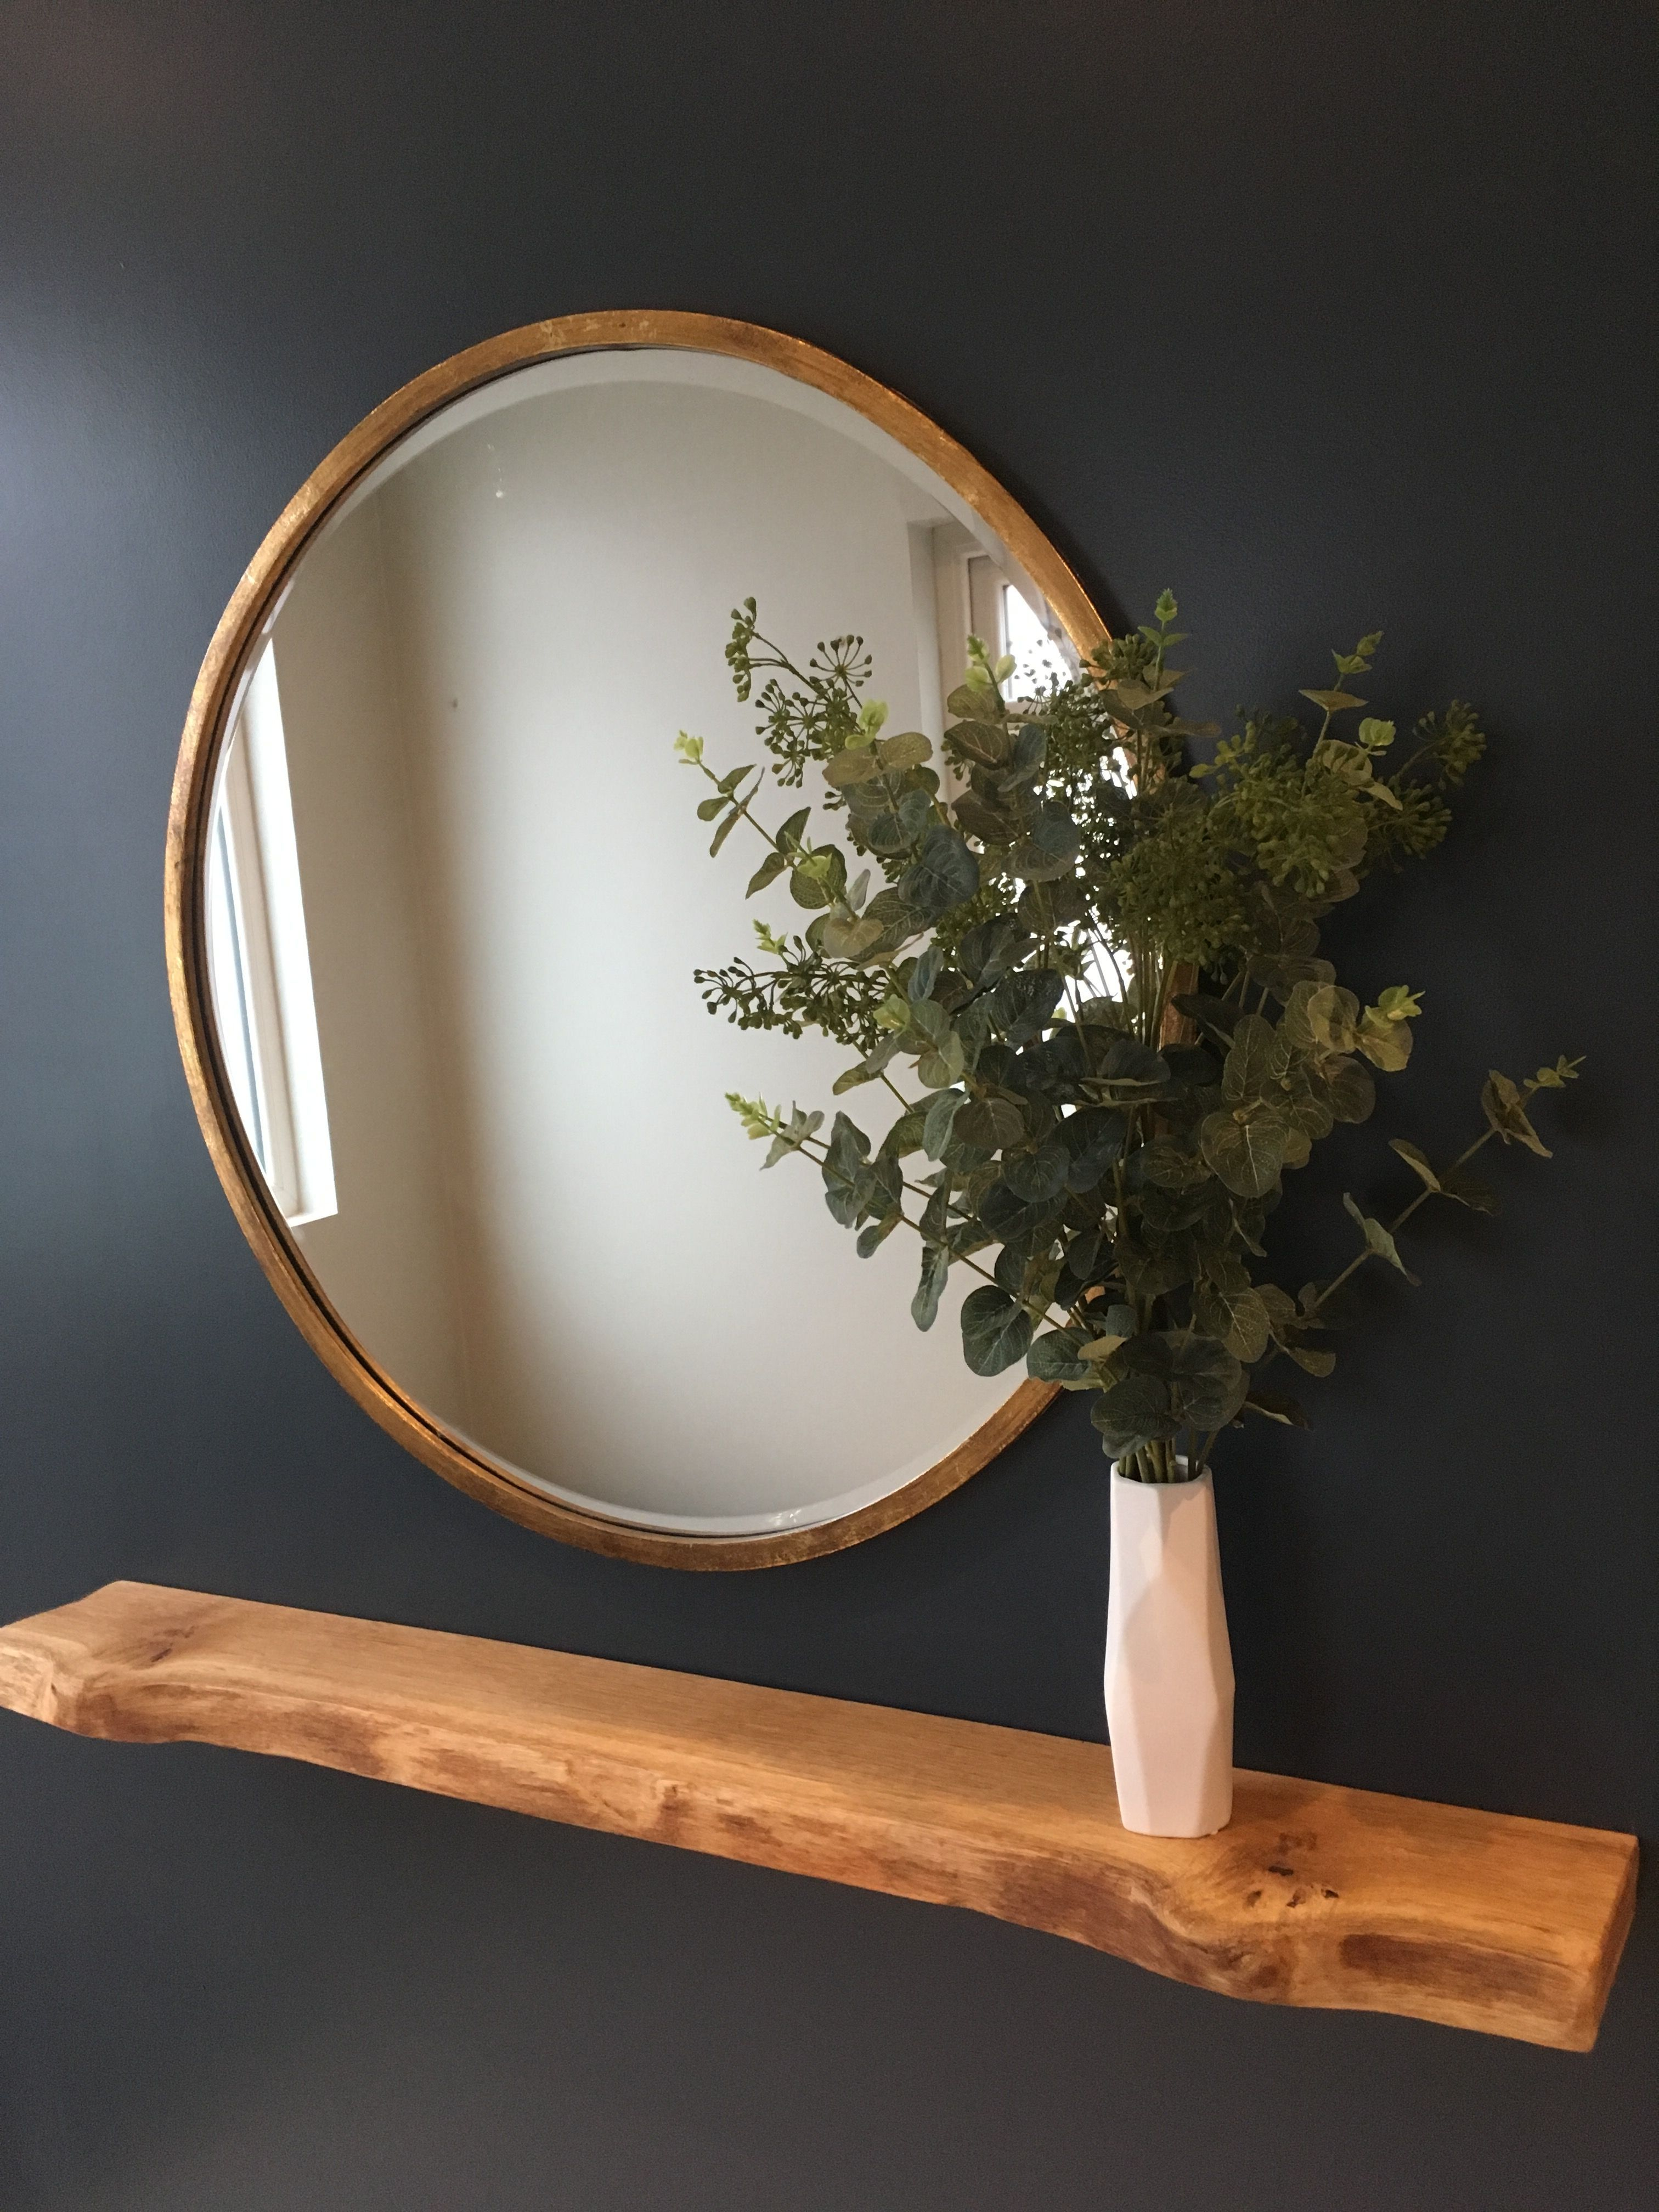 Photo of Bronze round mirror with eucalyptus leaves and a floating oak shelf,  #Bronze #eucalyptus #fa…